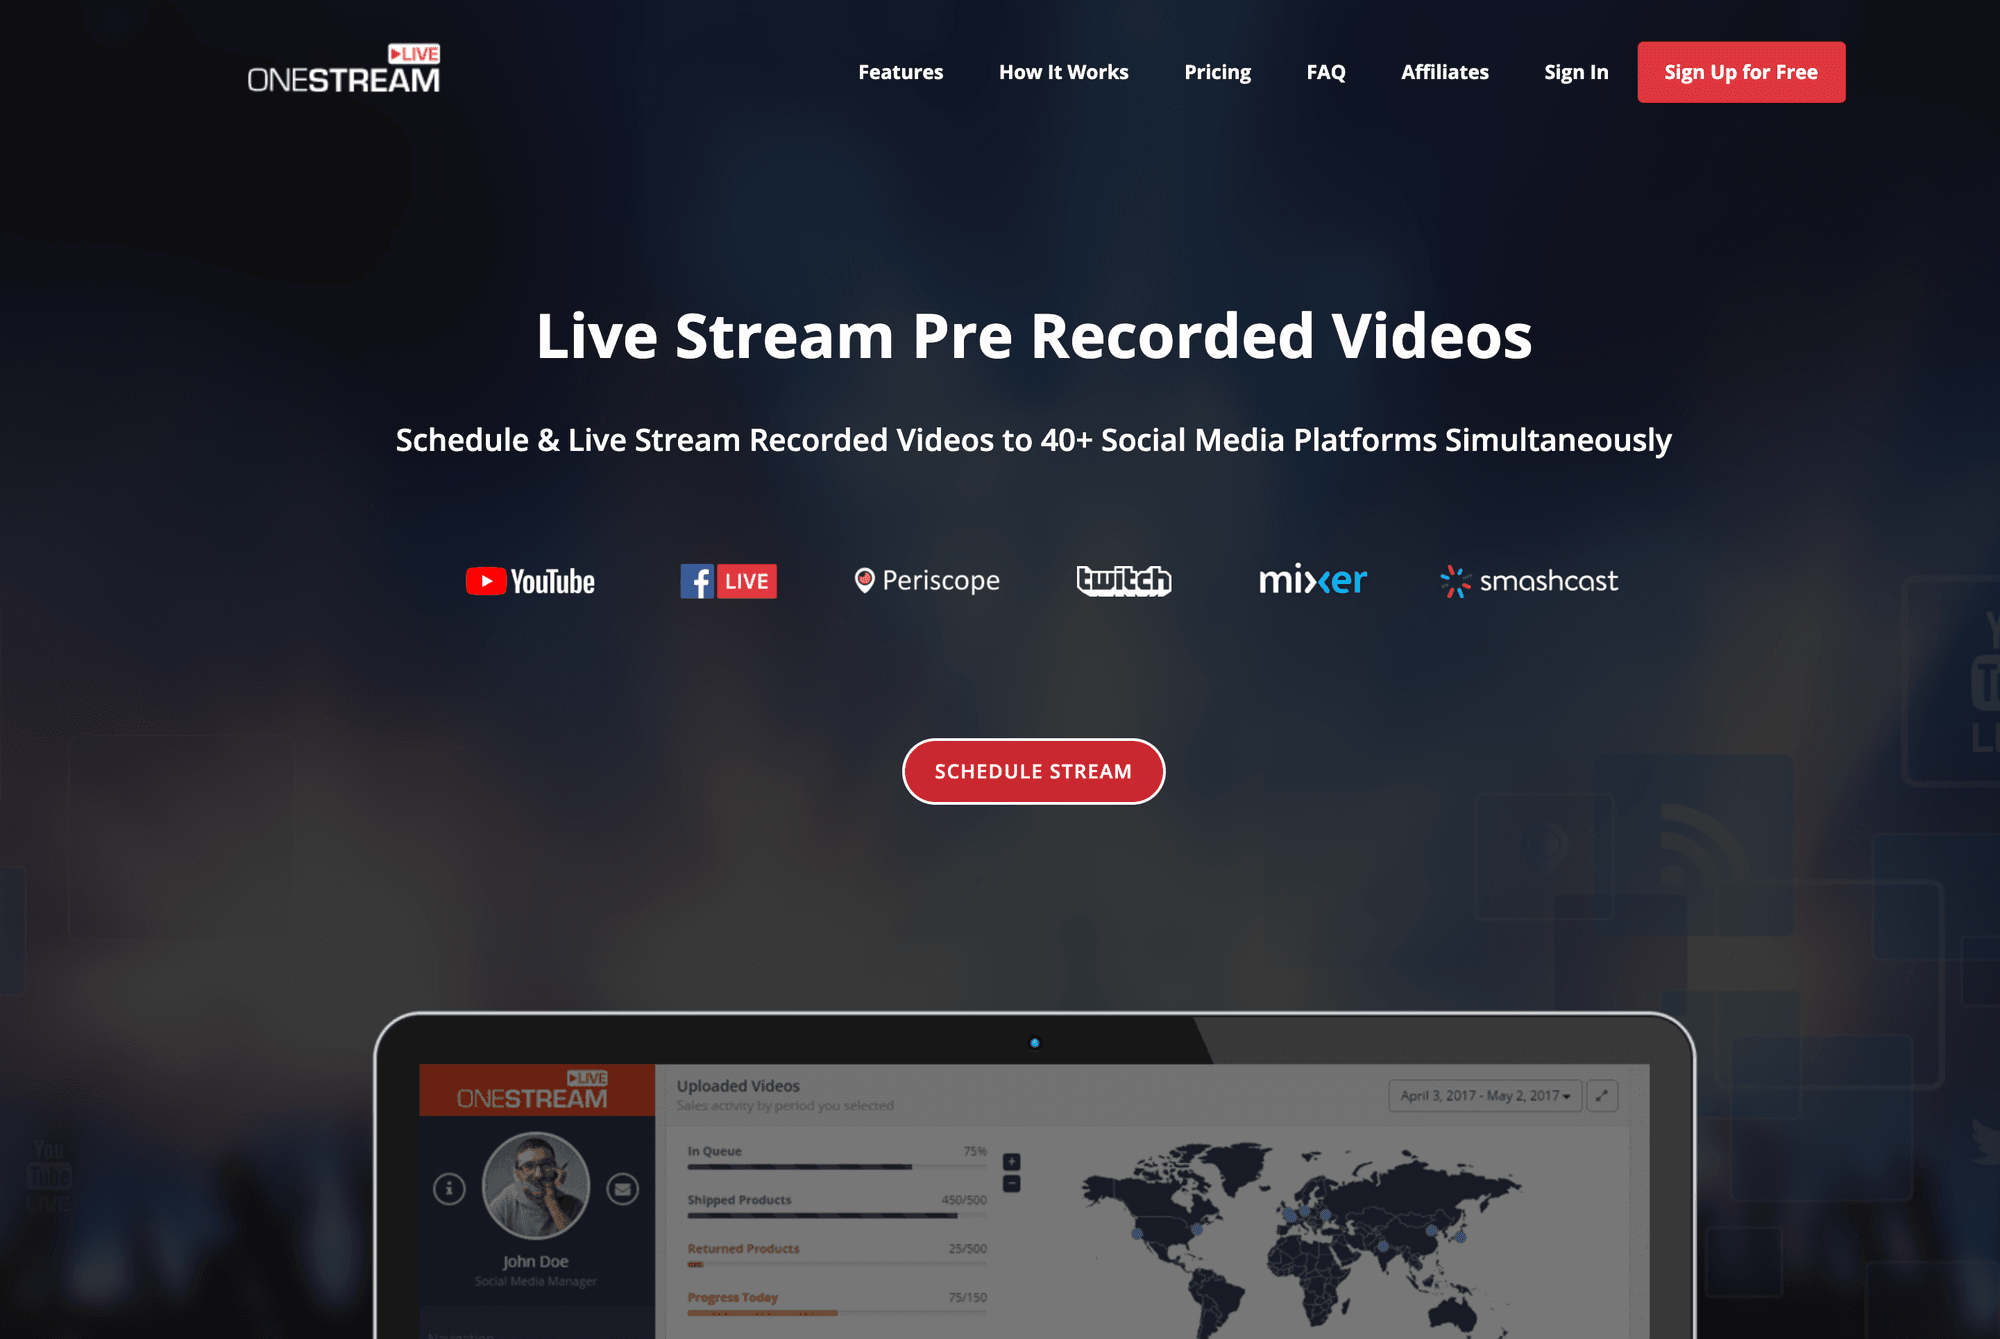 OneStream Live: a great restream alternative to schedule pre-recorded videos as LIVE streams